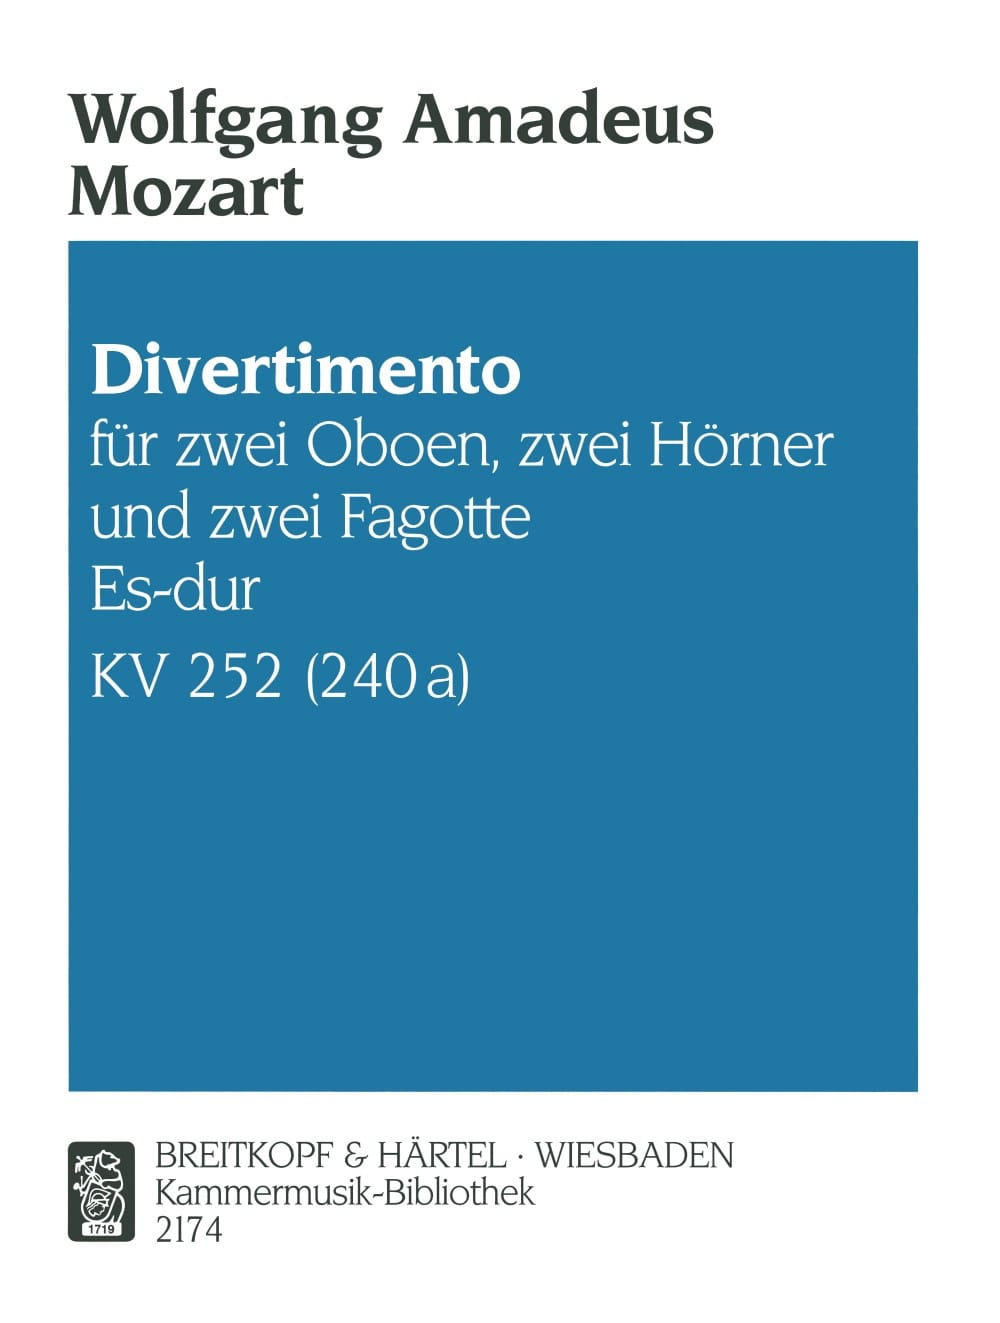 MOZART - Divertimento Es-Dur KV 252 - Bläsersextett - Stimmen - Partition - di-arezzo.co.uk